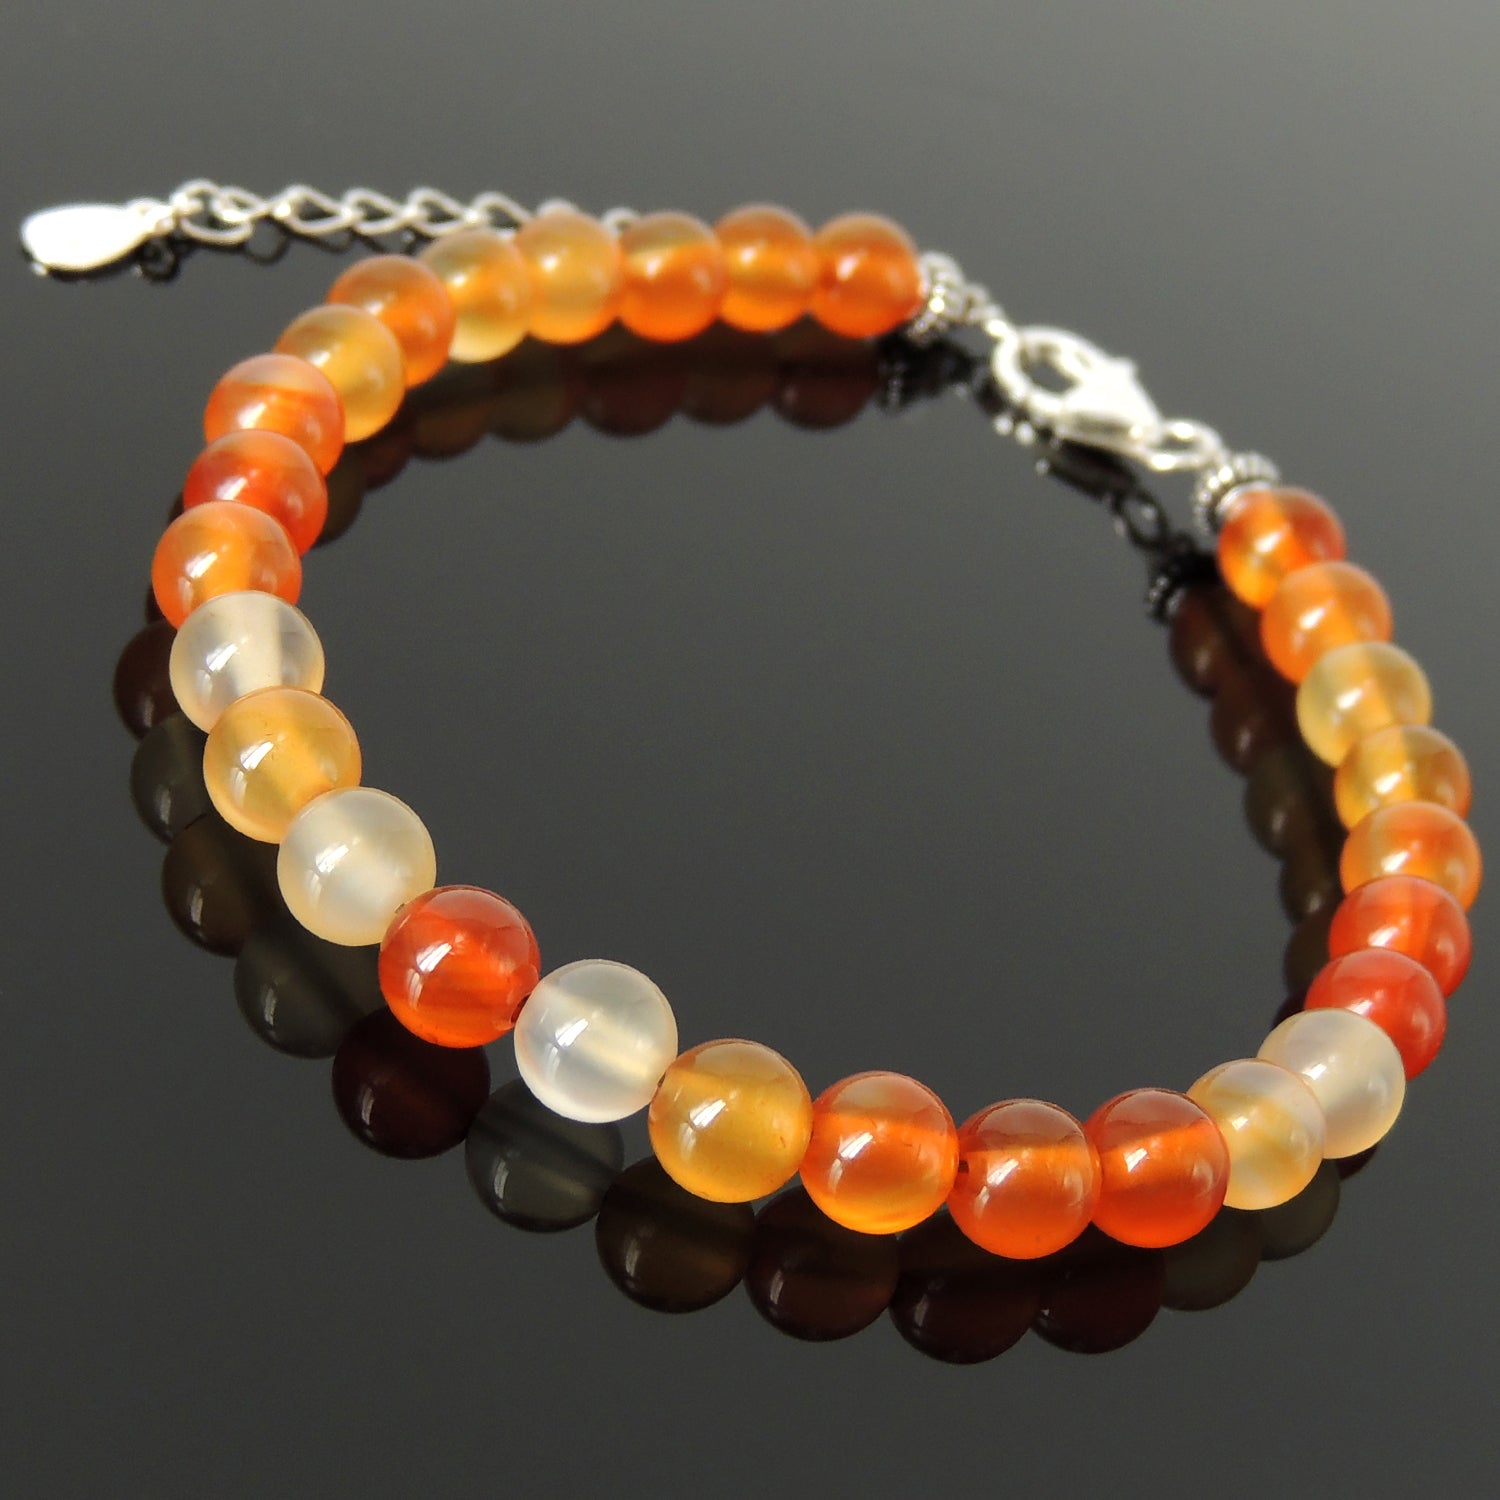 Handmade Adjustable Clasp Meditation Bracelet - Men's Women's Yoga Jewelry with 6mm Carnelian Multicolor Healing Gemstones, Genuine S925 Sterling Silver Parts (Non-Plated) BR1842